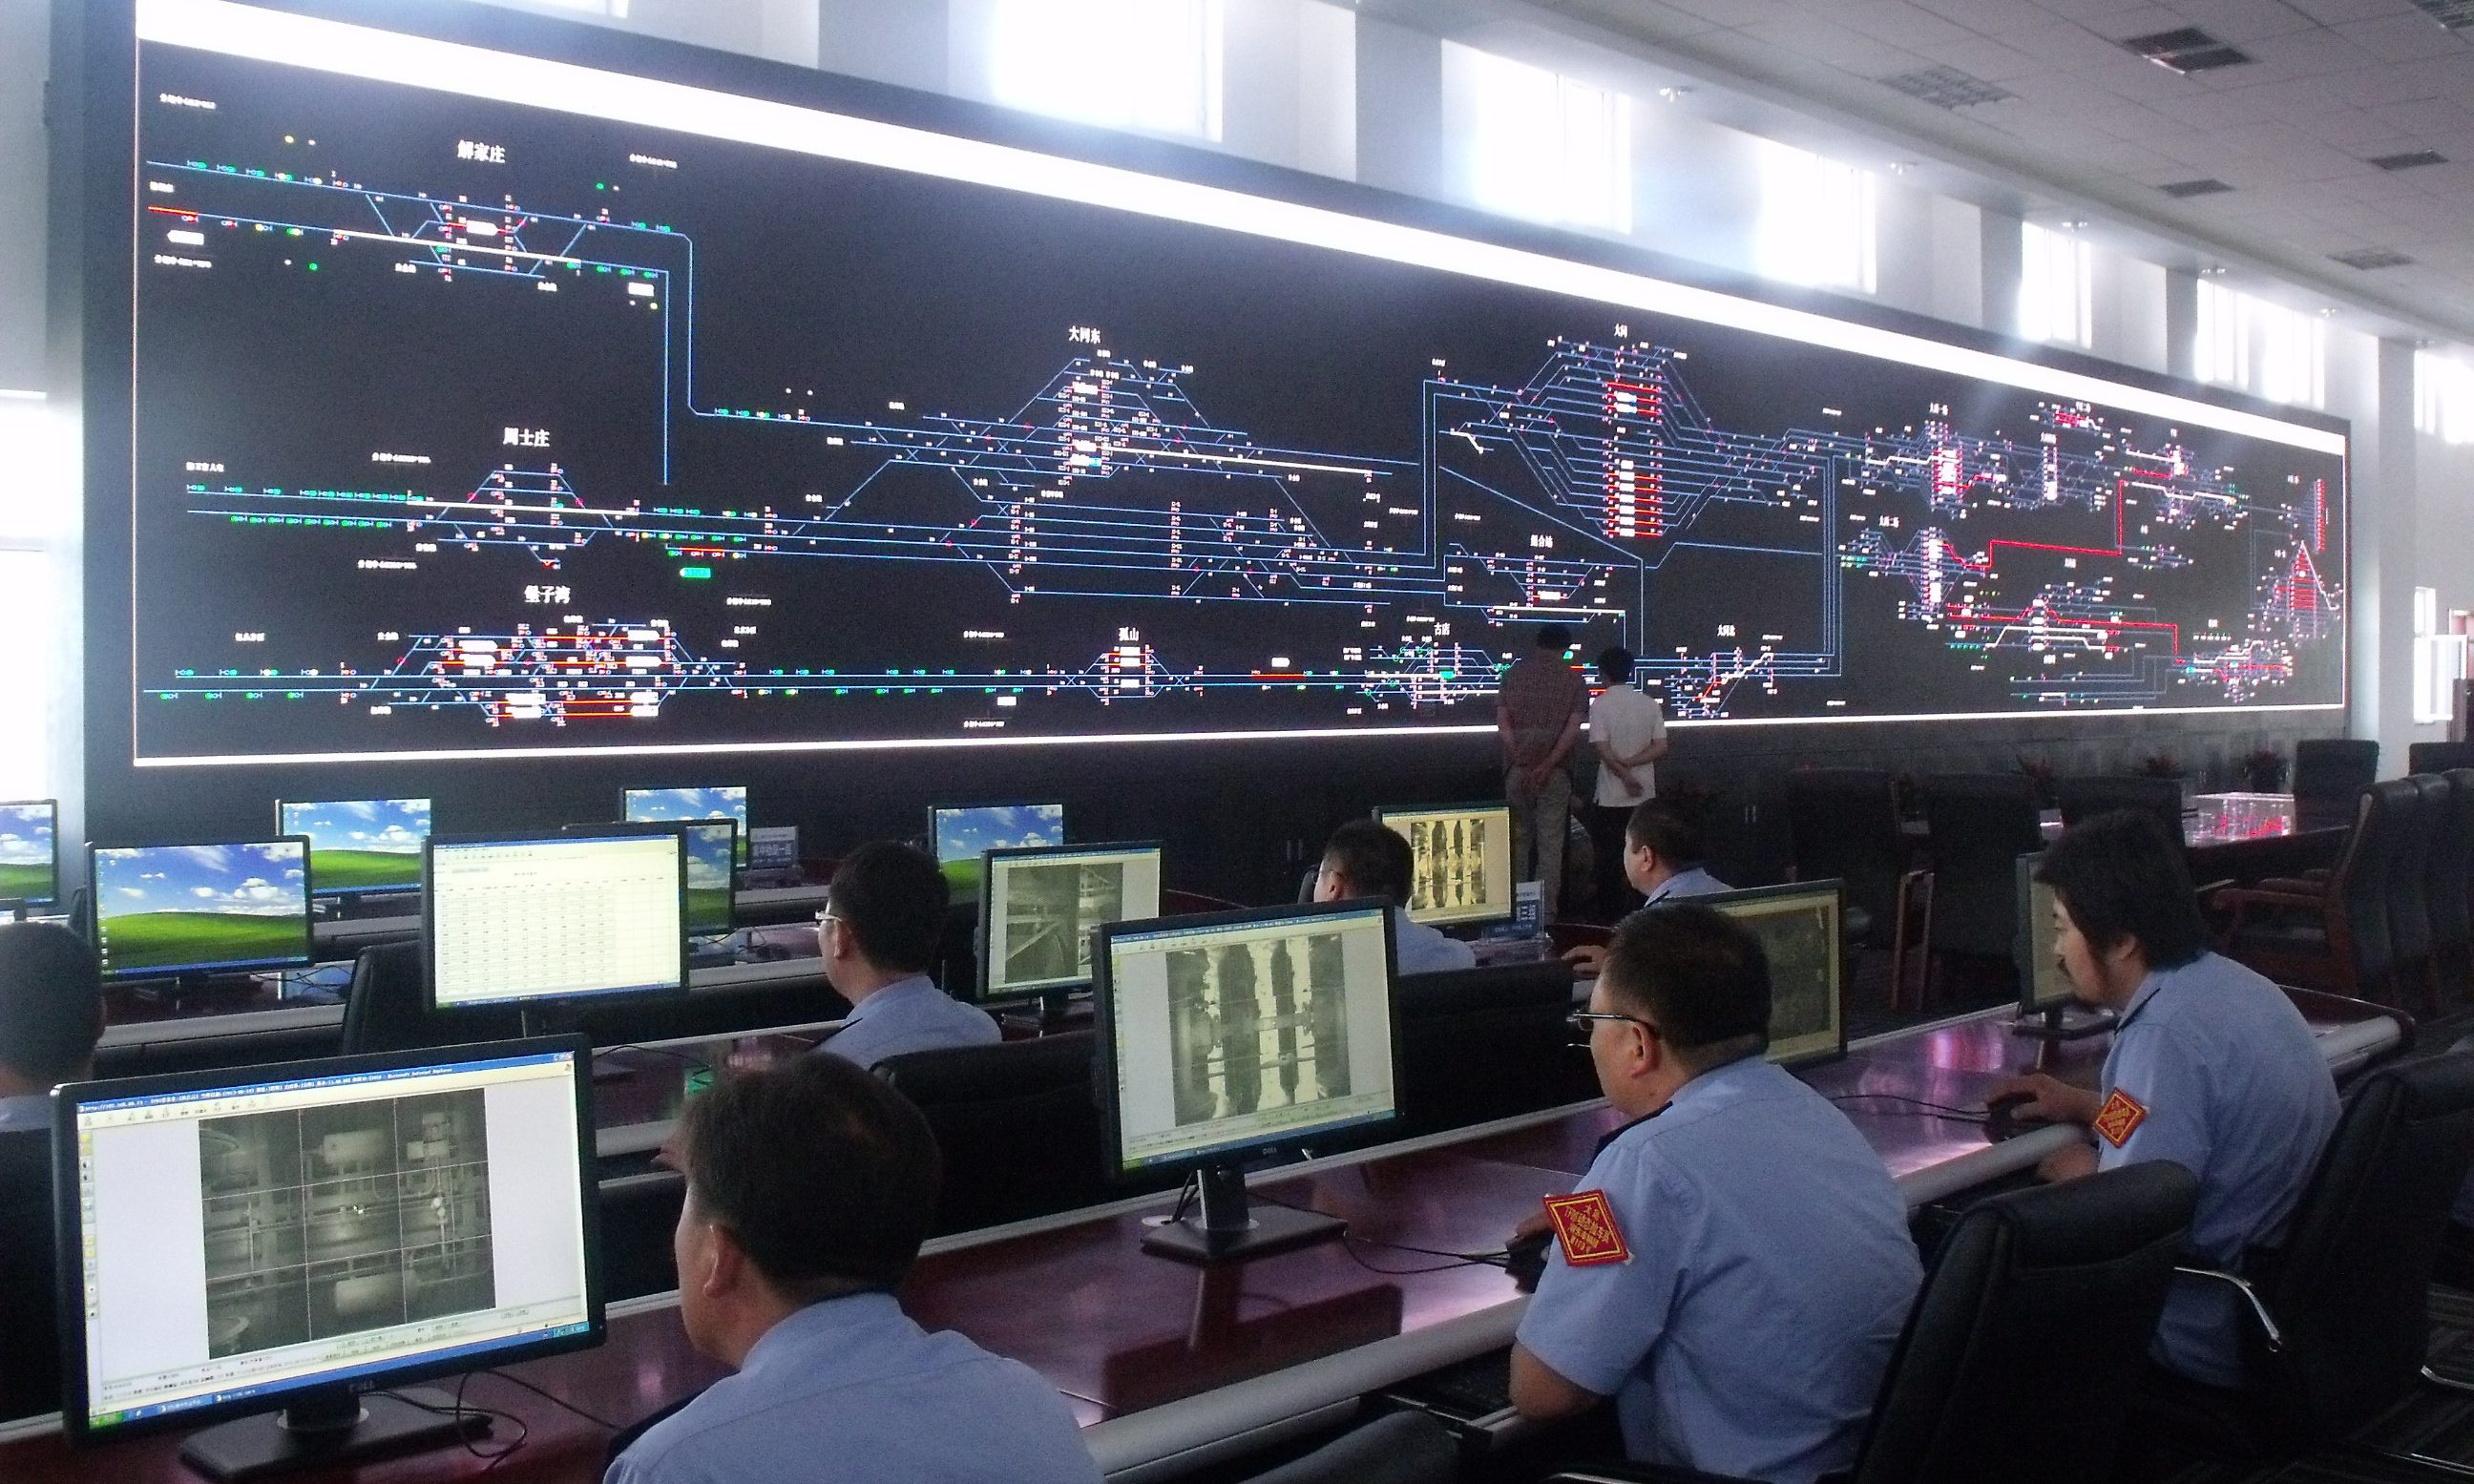 Unilumin - UTV2.5 73sqm, Command center in Datong, Shanxi,2013